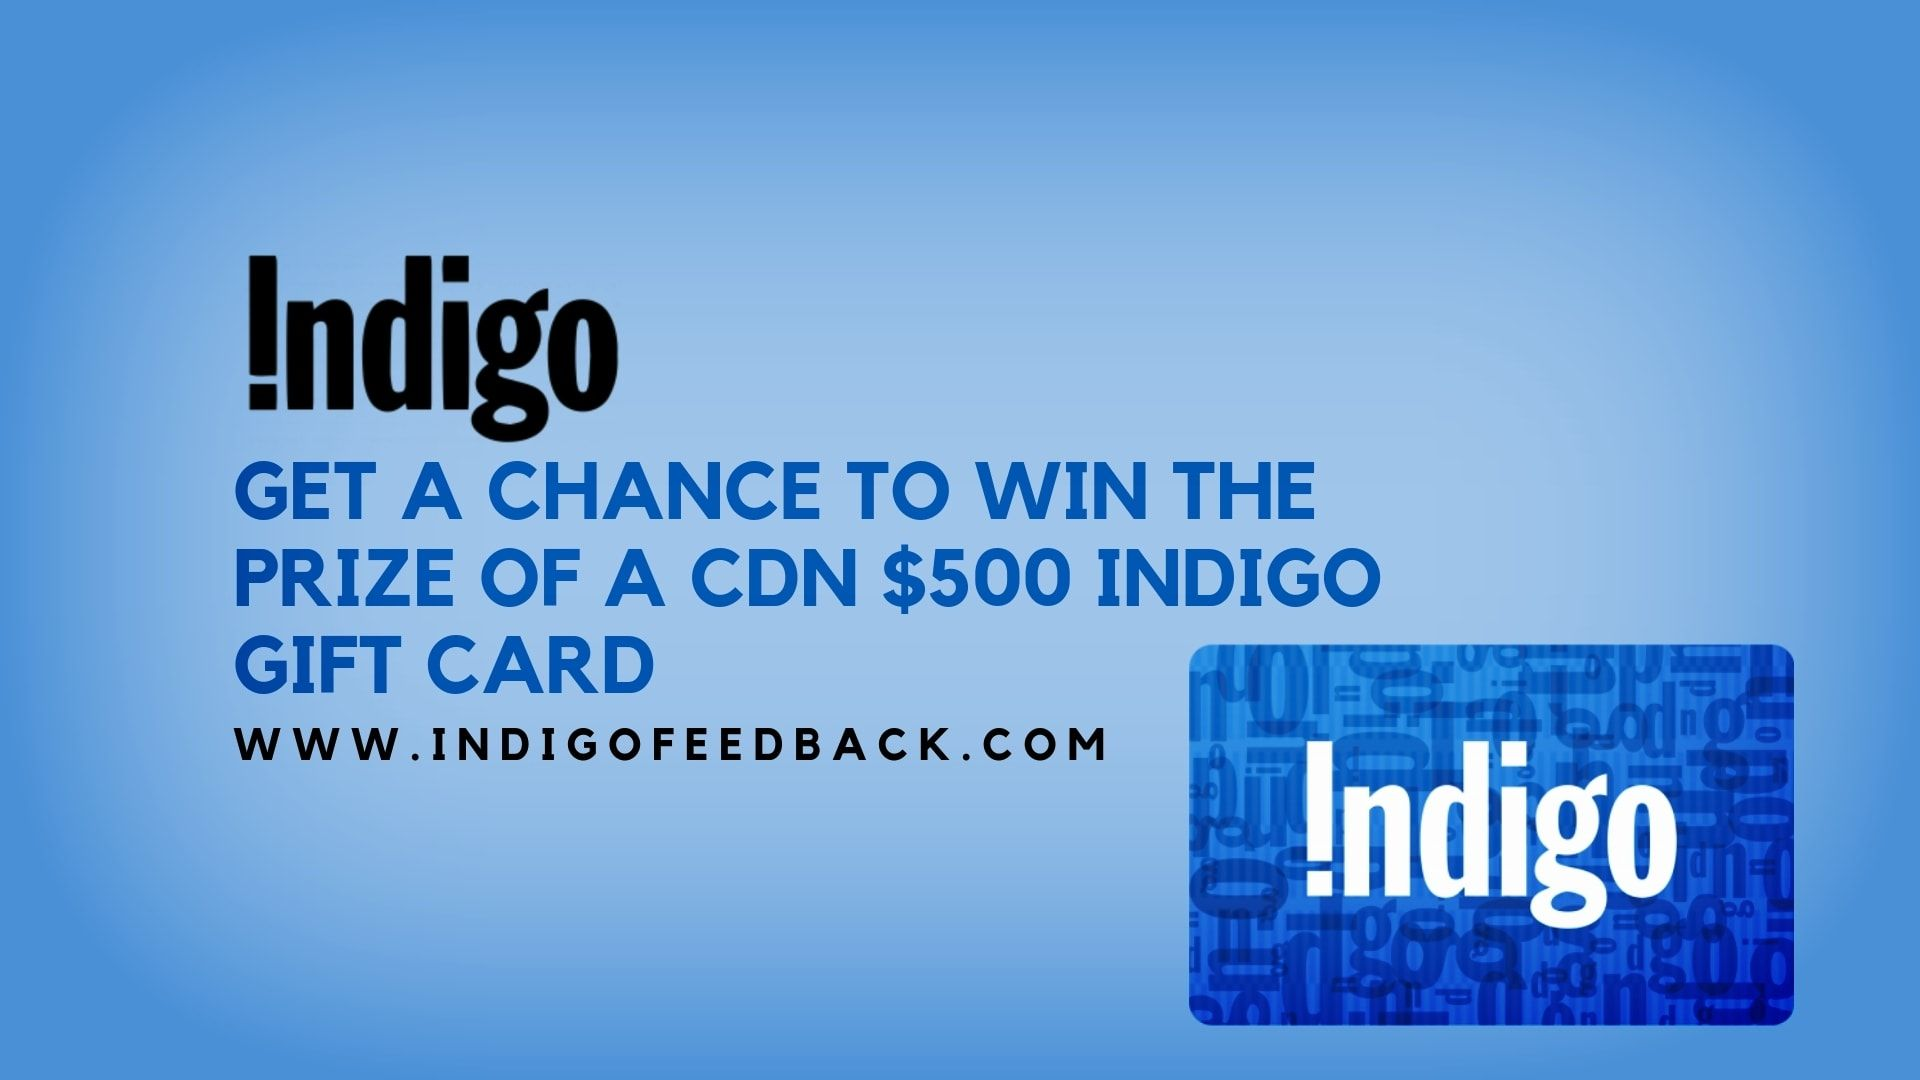 Indigofeedback- Win the Prize of CDN $500 Indigo Gift Card